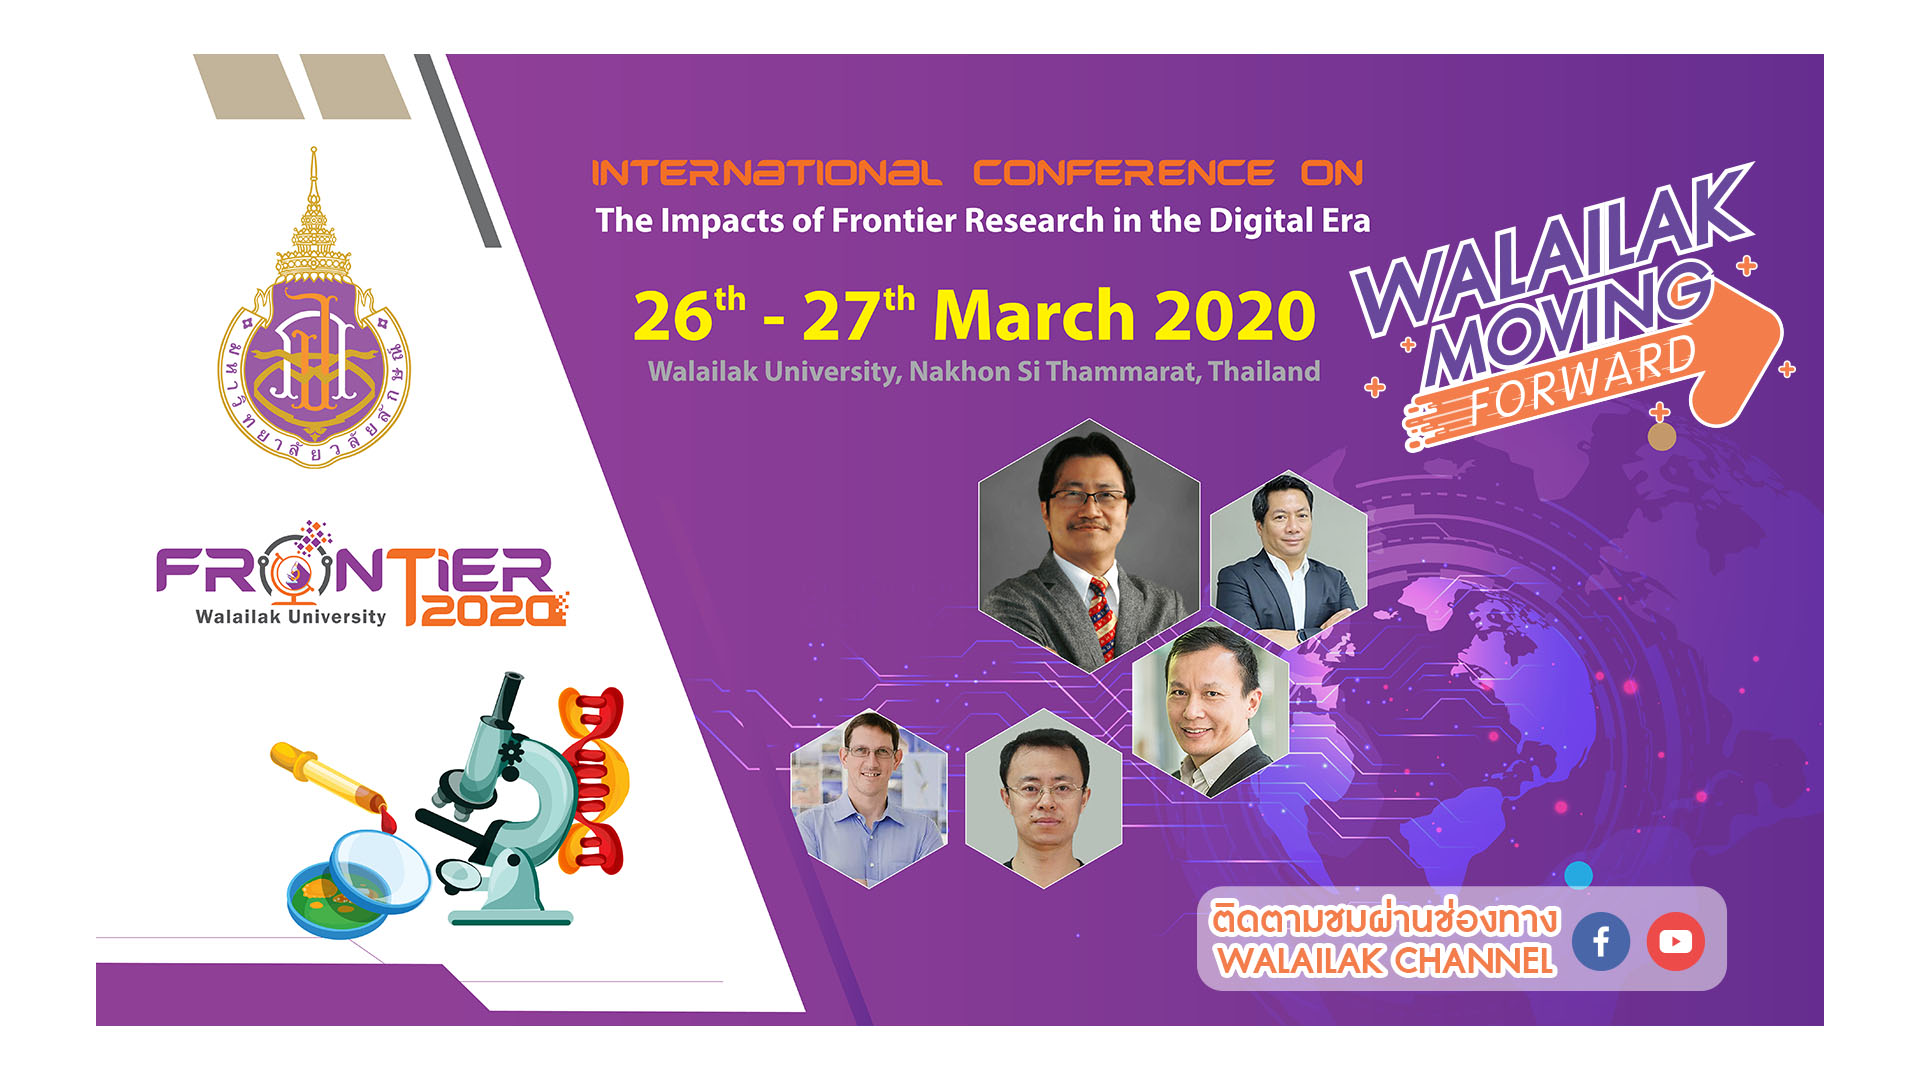 WALAILAK MOVING FORWARD - THE IMPACTS OF FRONTIER RESEARCHIN THE DIGITAL ERA